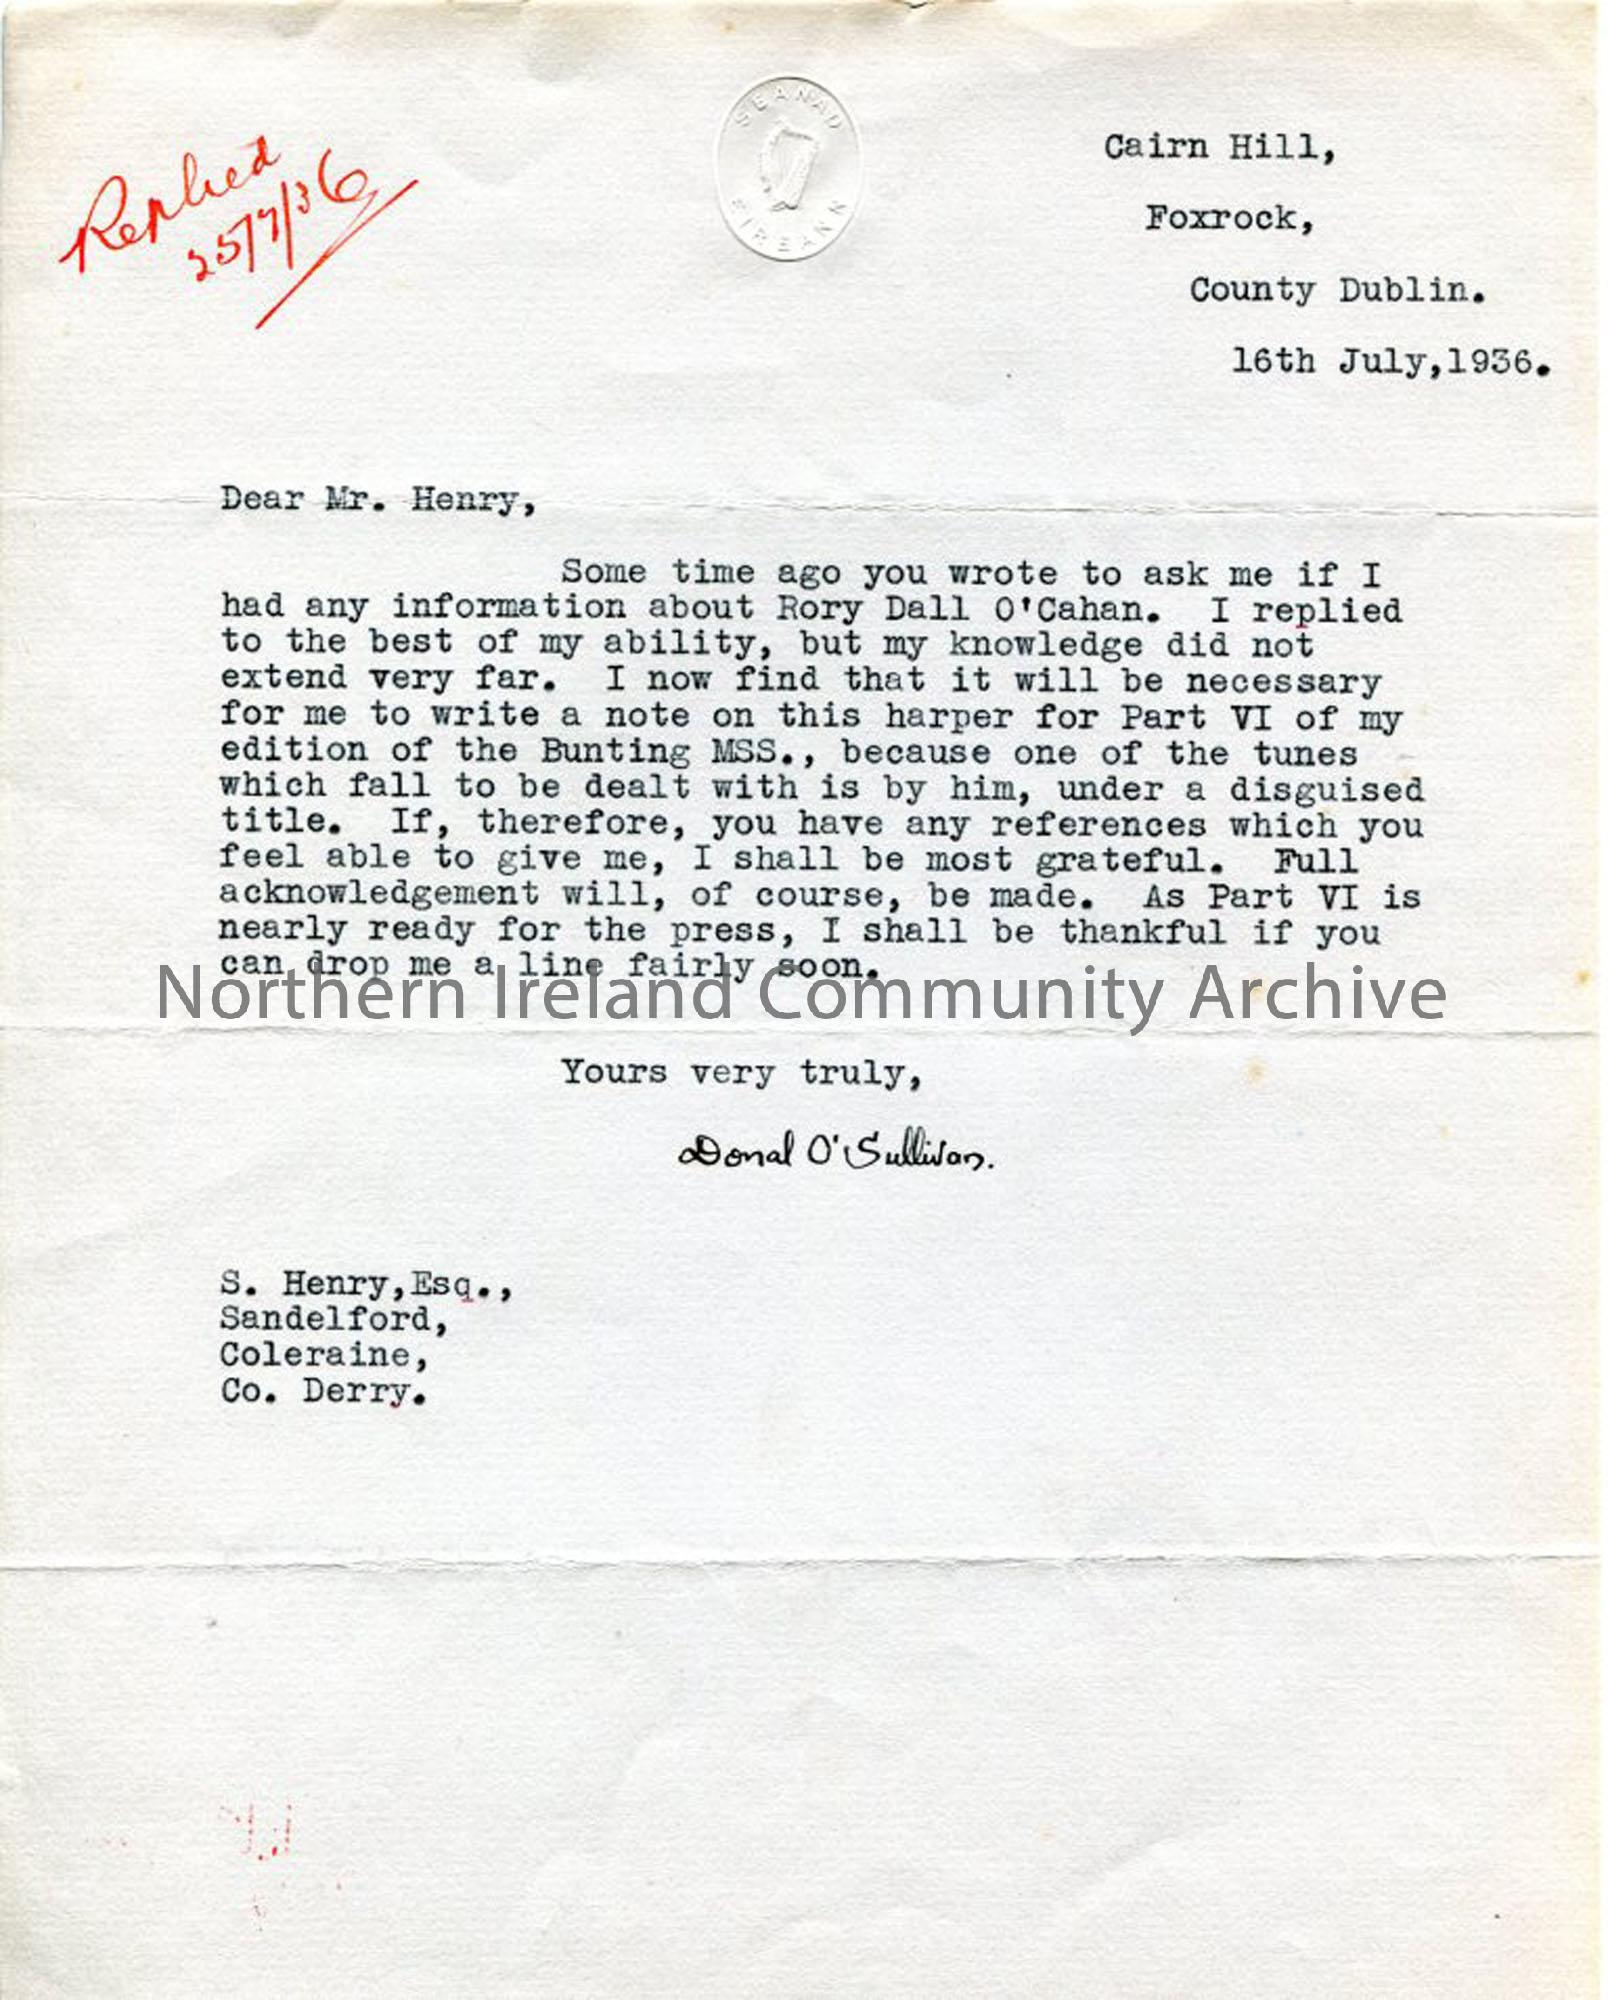 Letter From Donal O'Sullivan, dated 16.7.1936